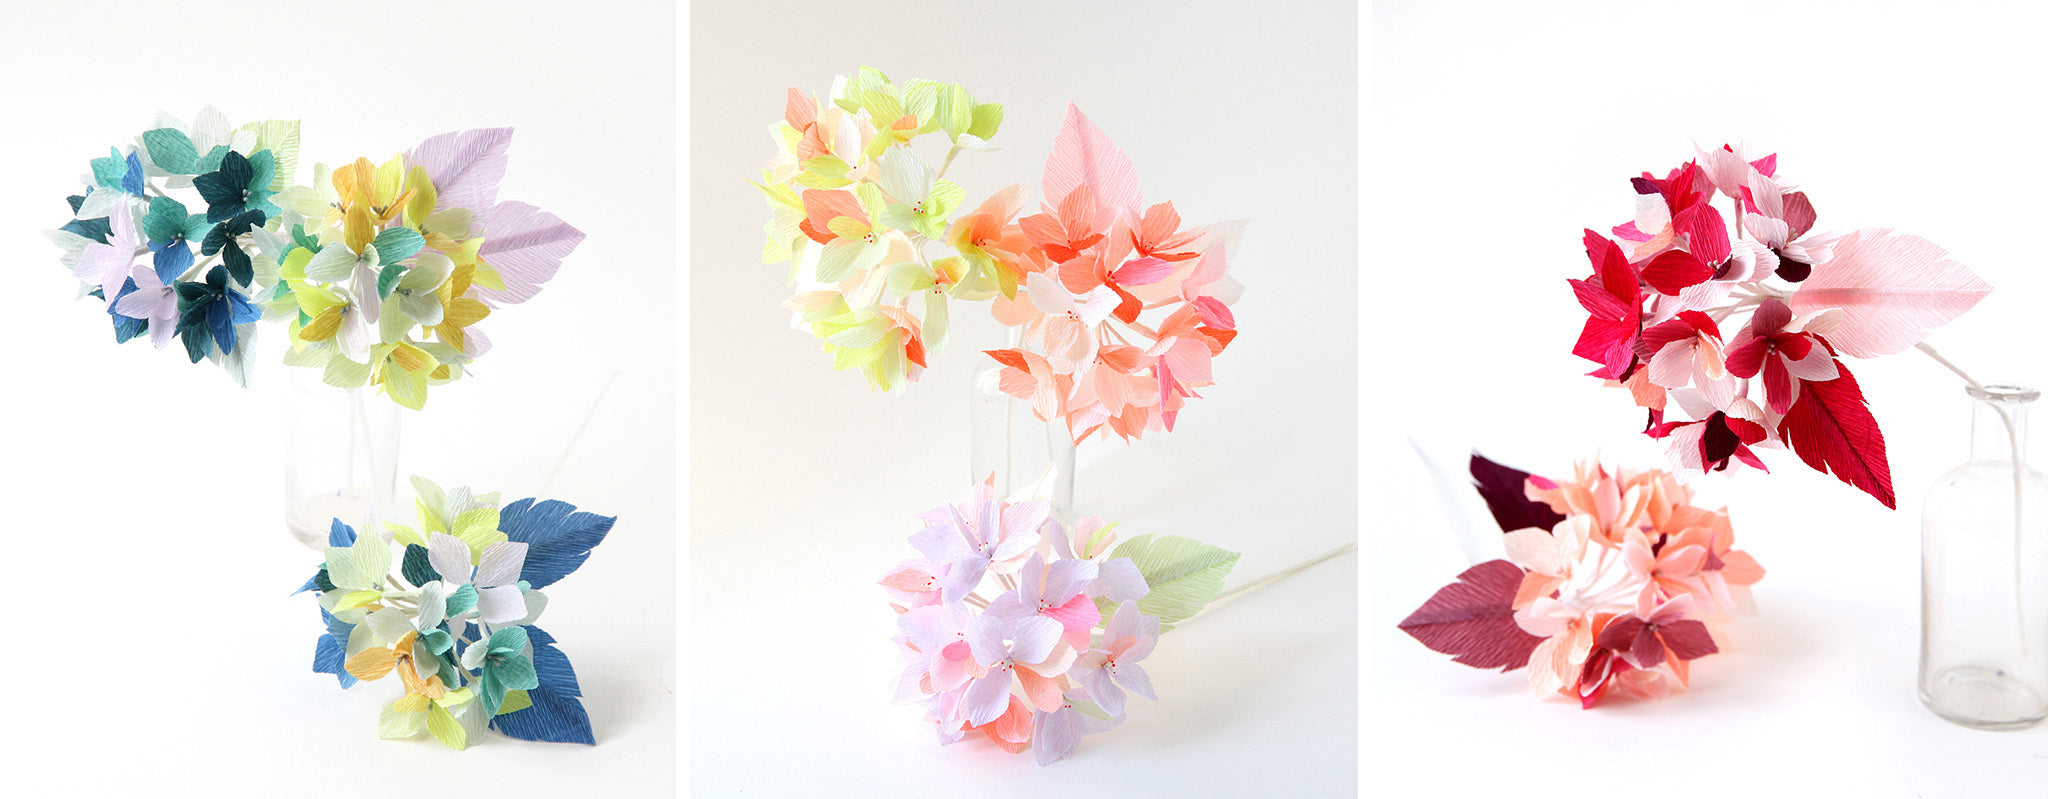 article-blog-hortensia-japon-ambiance-3